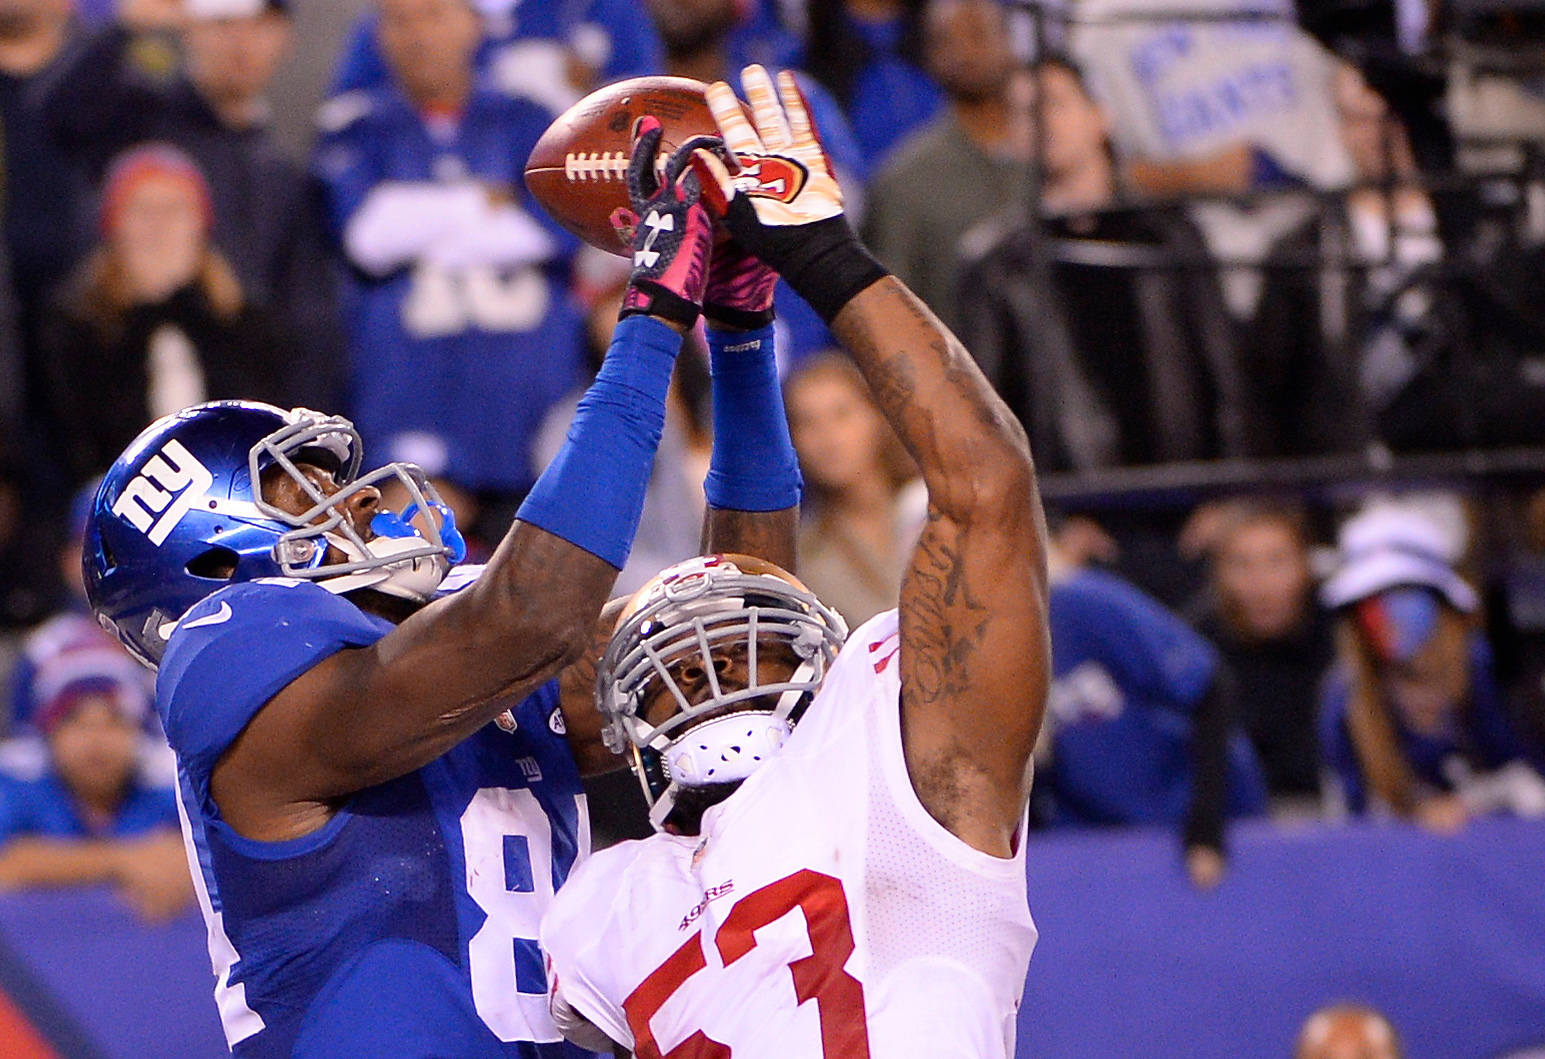 NFC East Blog - New York Giants Top NFC East After 5 Weeks